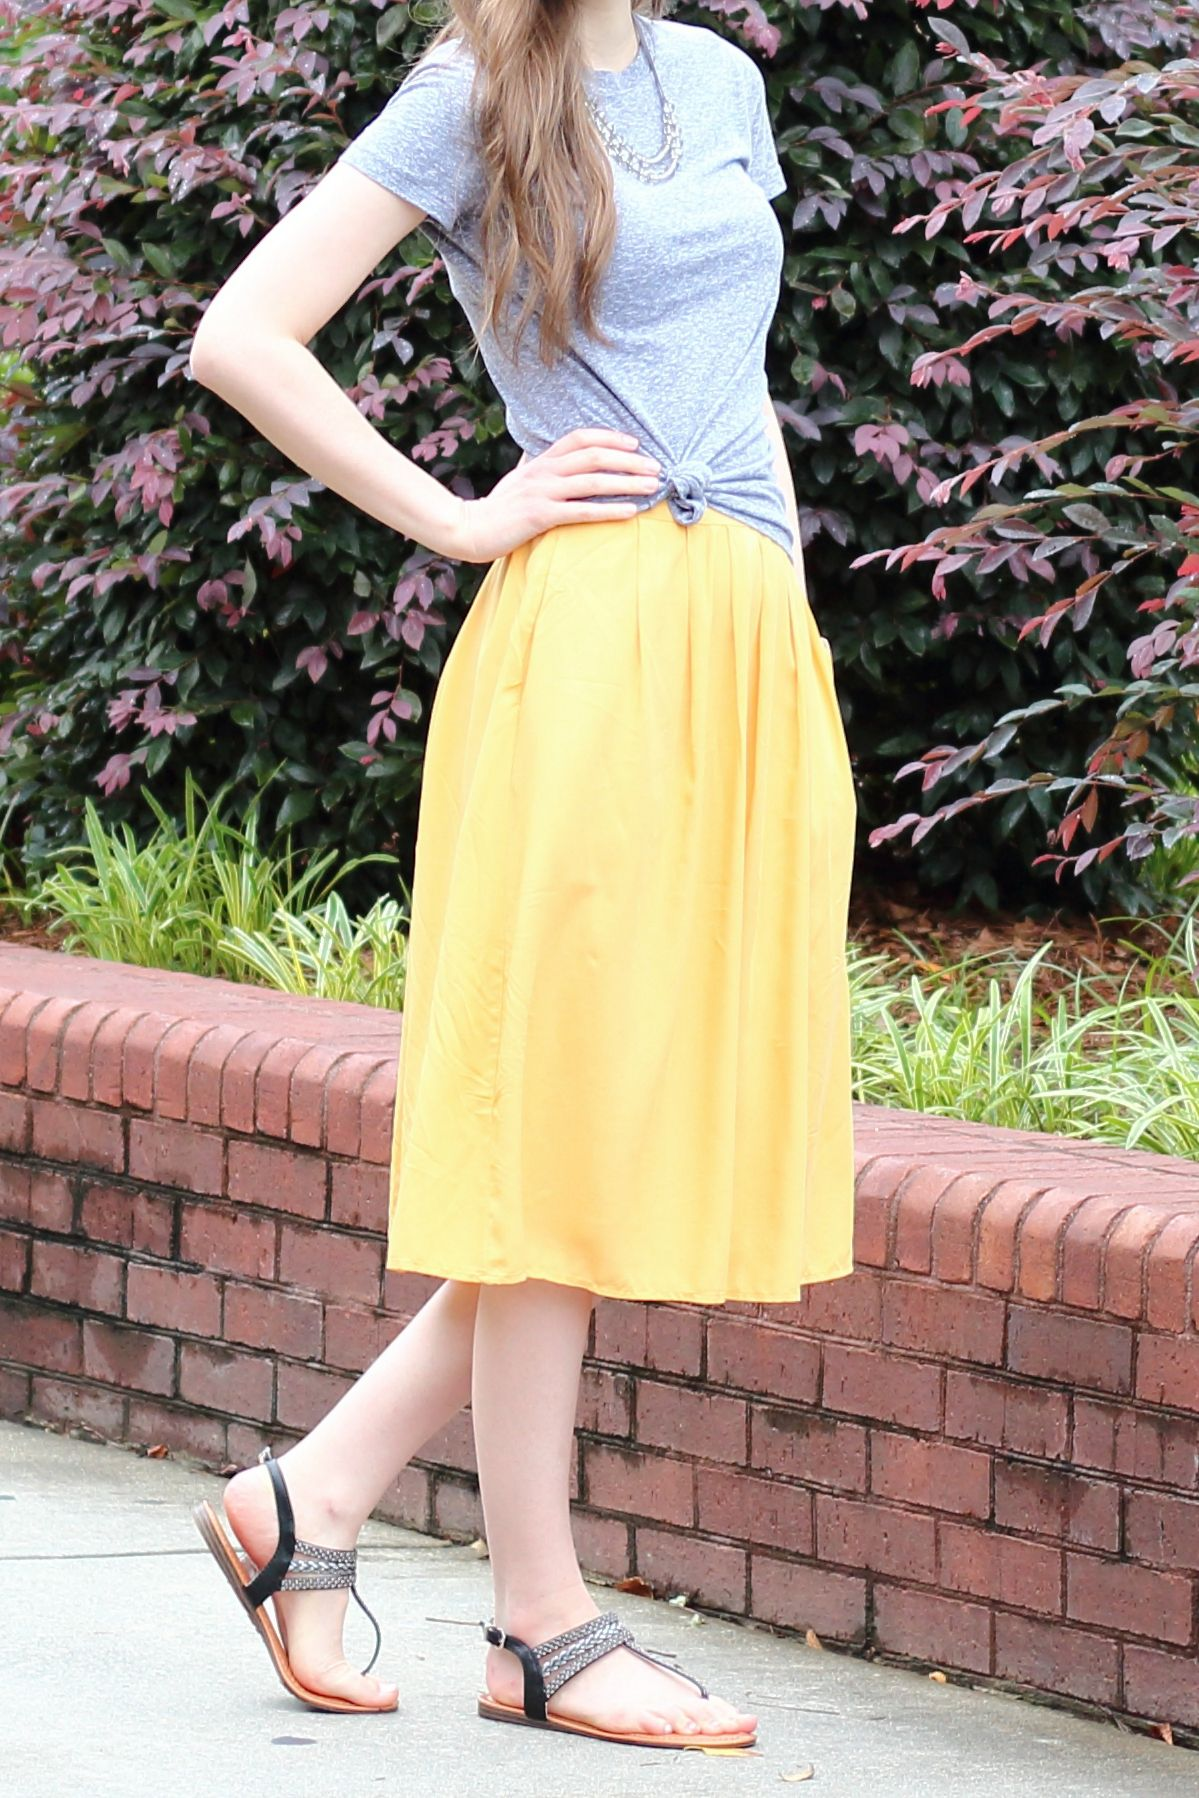 6aae06202f1f Modest Casual Outfit Idea For Church  Yellow Midi Skirt  Basic Gray  Tee  Black Sandals  Spring Summer Style ...